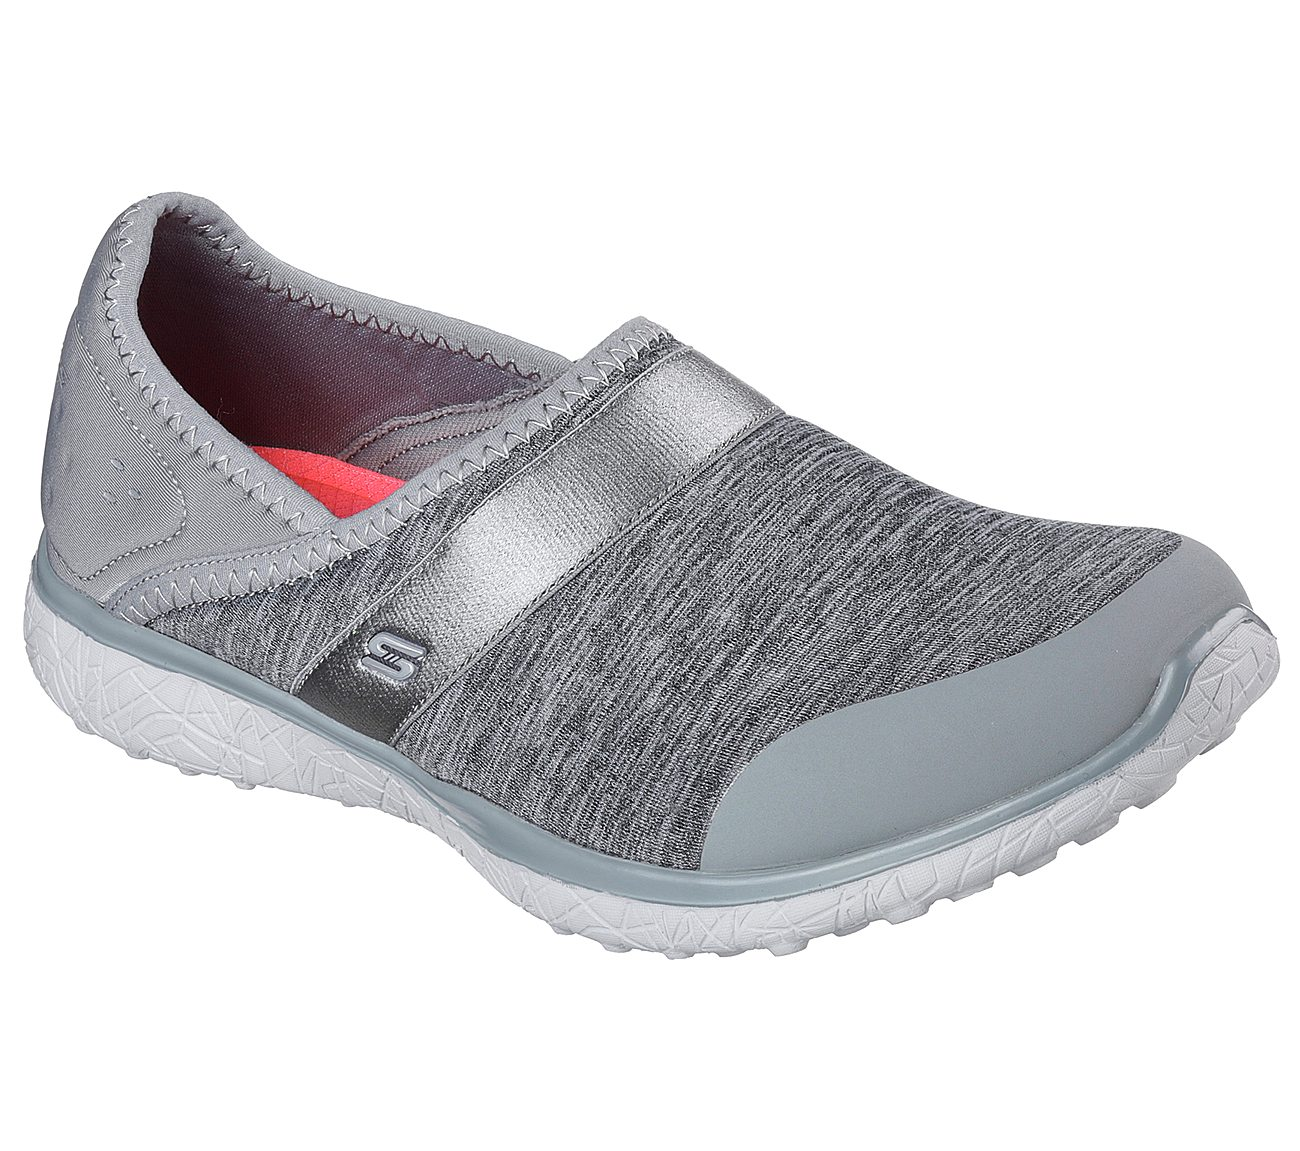 bca79d7c Buy SKECHERS Microburst - Greatness Sport Active Shoes only $67.00